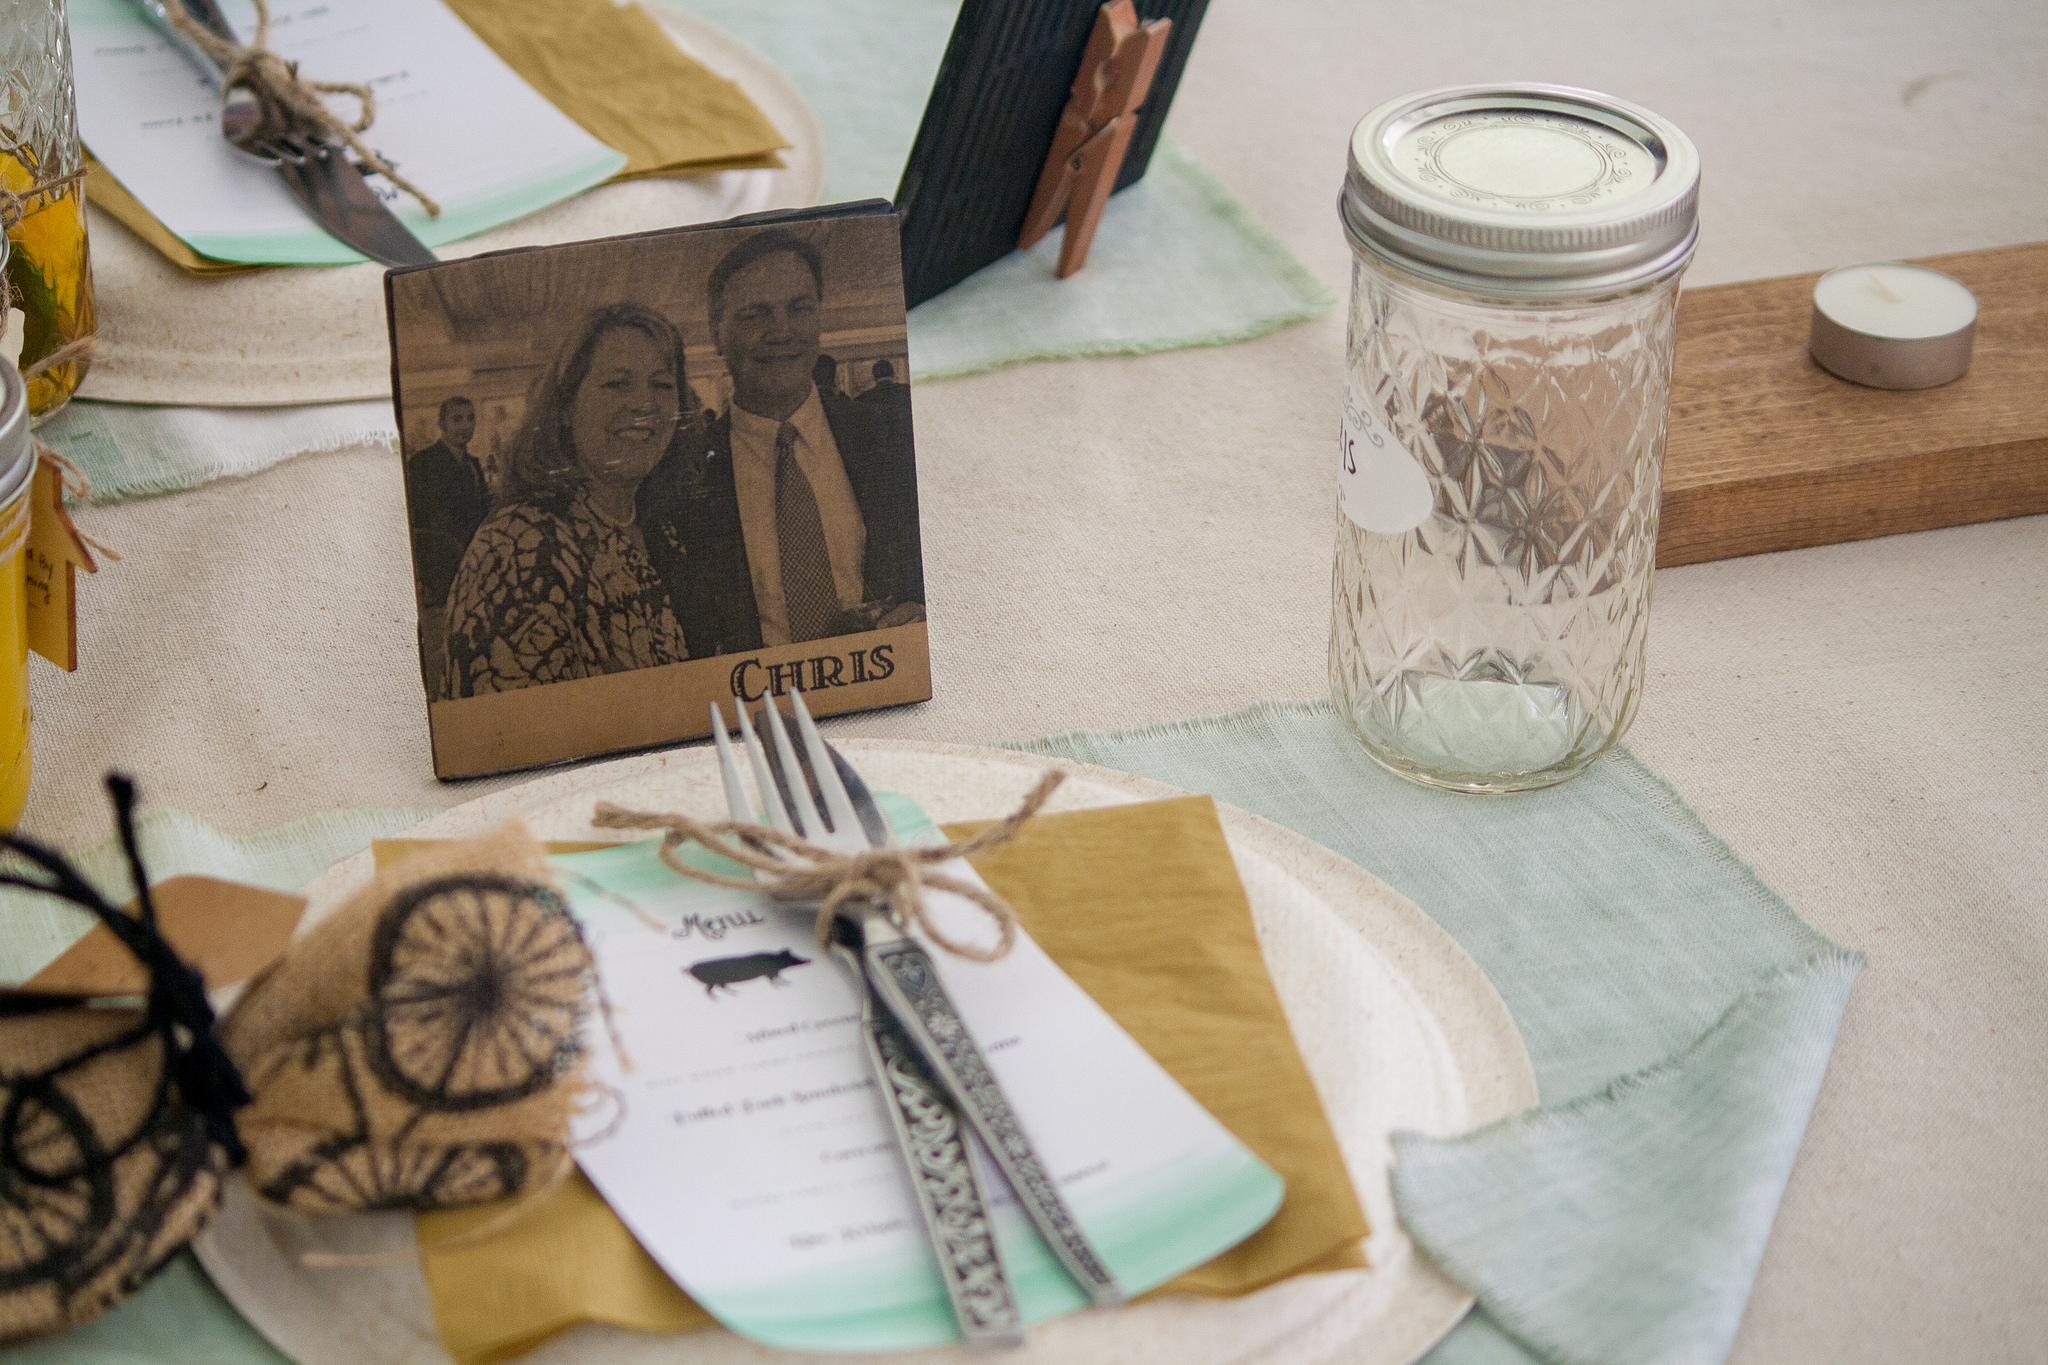 Personalized place settings create an experience your guests will never forget